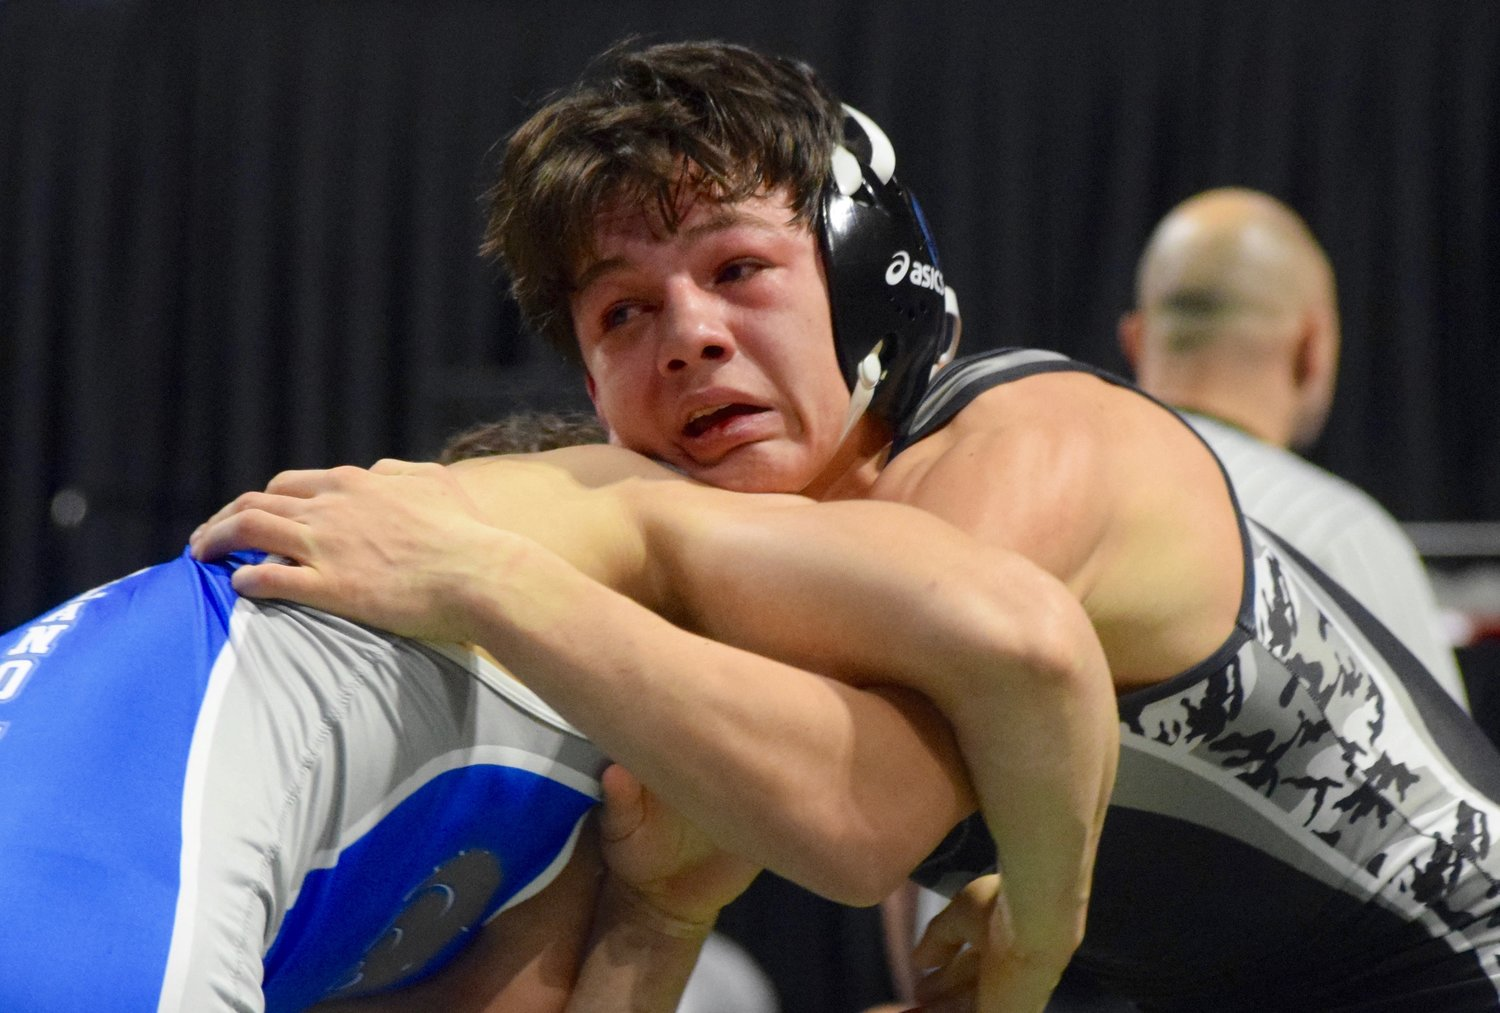 Vandegrift sophomore Luke Sloan finished second in the 132-pound division at the UIL State Wrestling tournament Saturday at the Berry Center in Cypress.